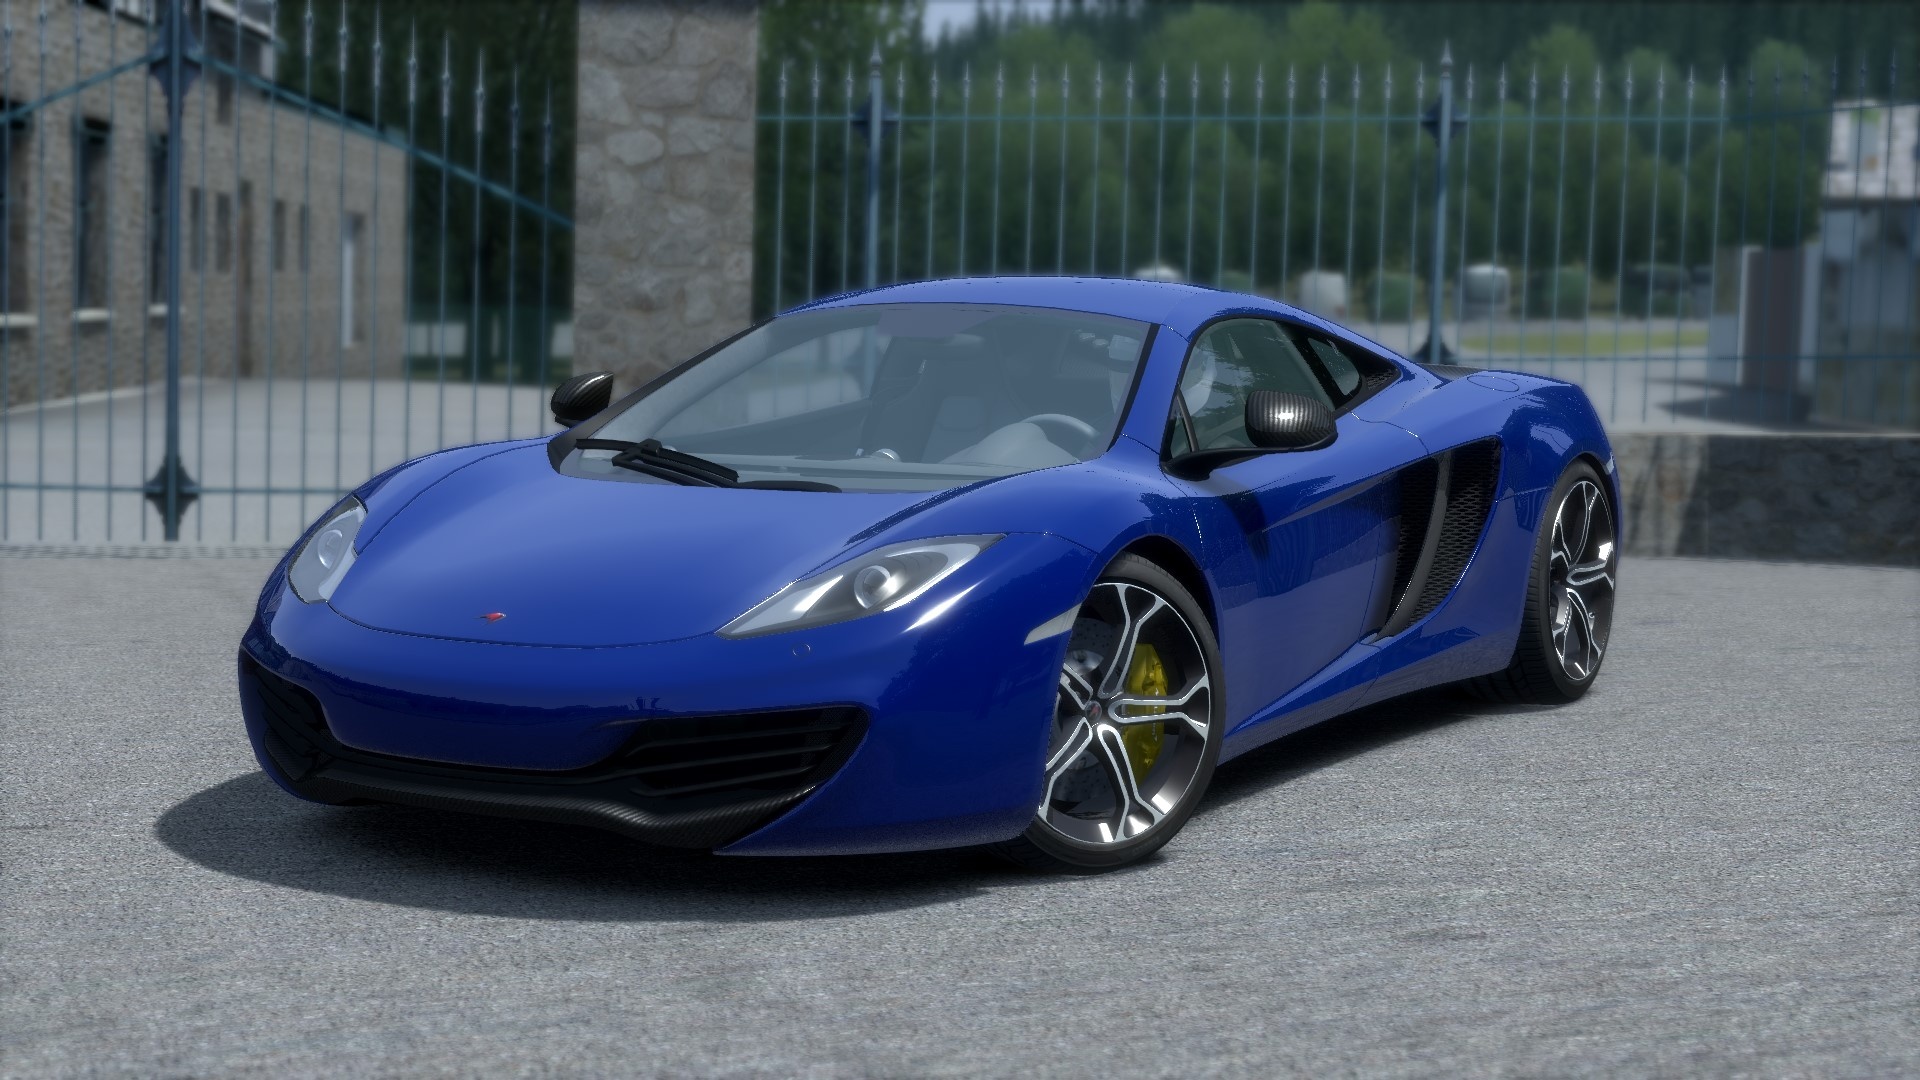 Screenshot_mclaren_mp412c_spa_11-8-115-6-6-10.jpg